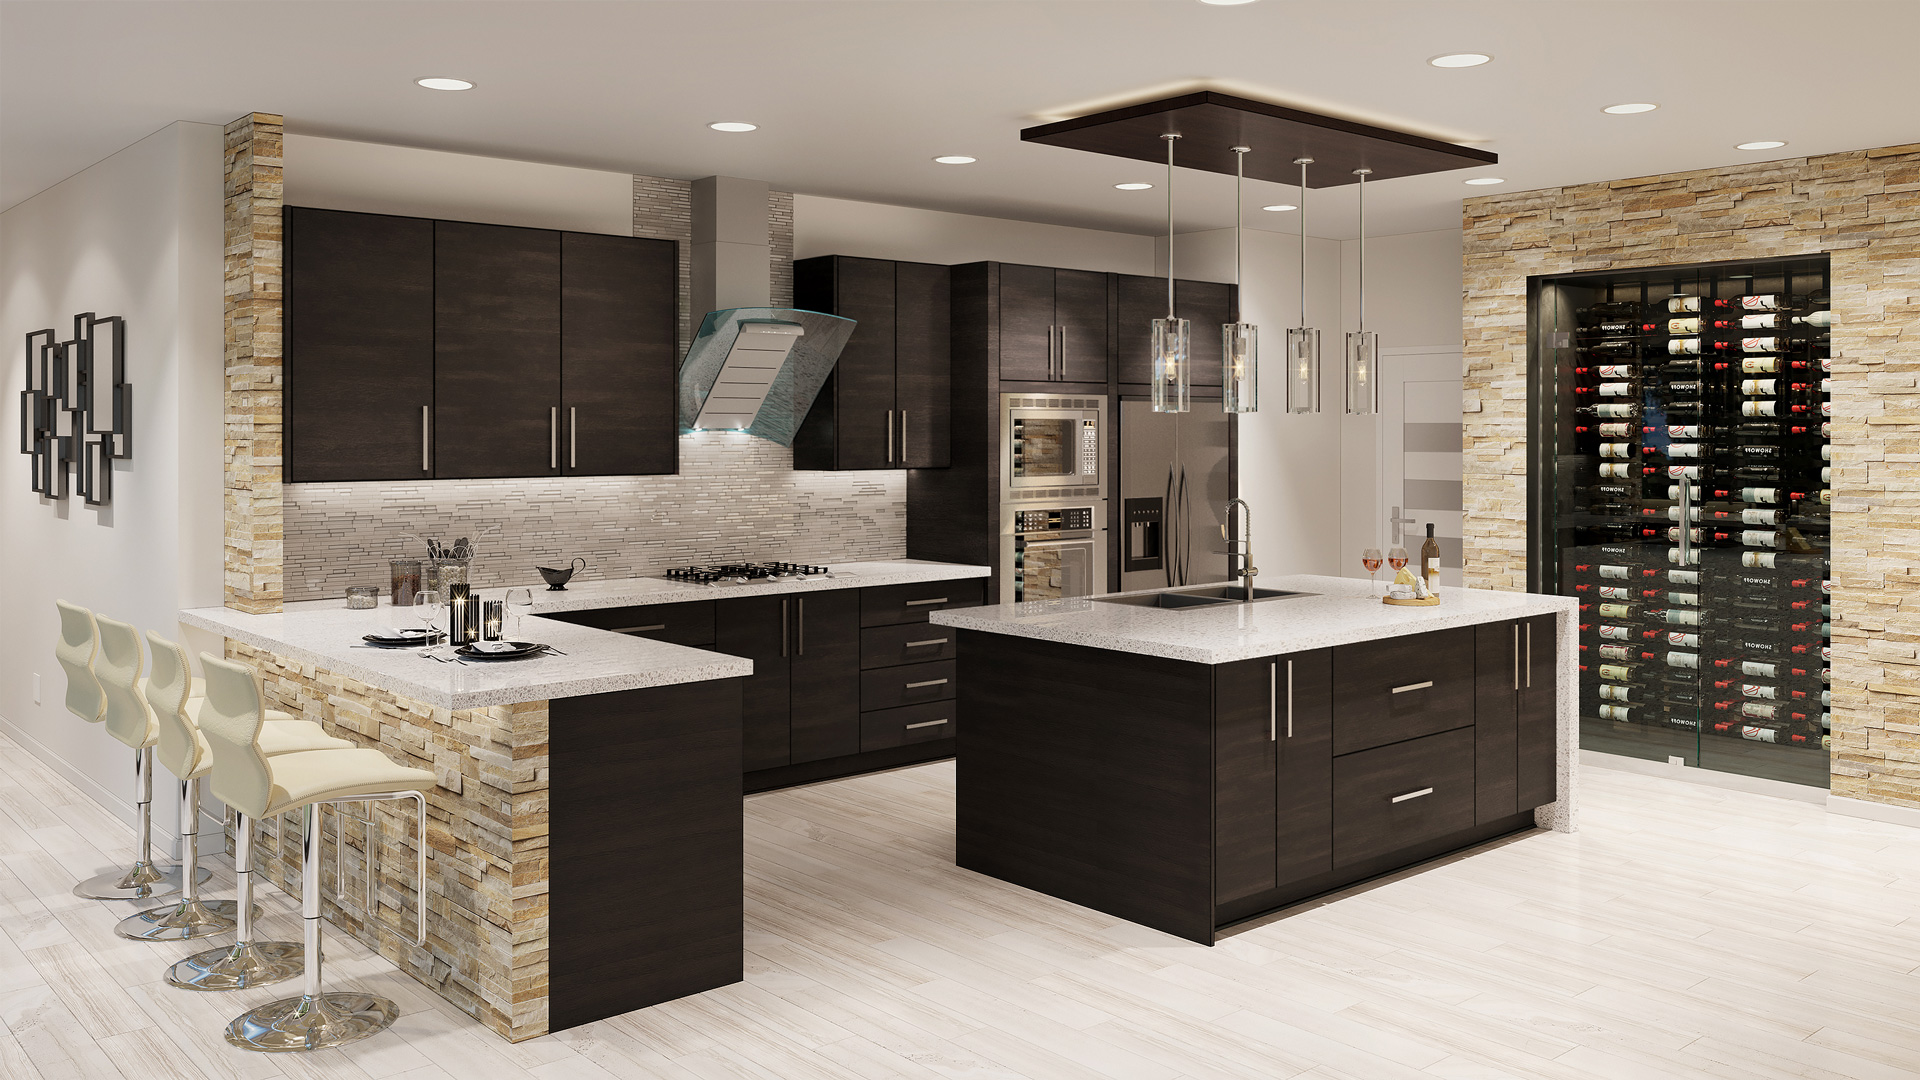 Kitchen Cabinet Color Trend This Summer